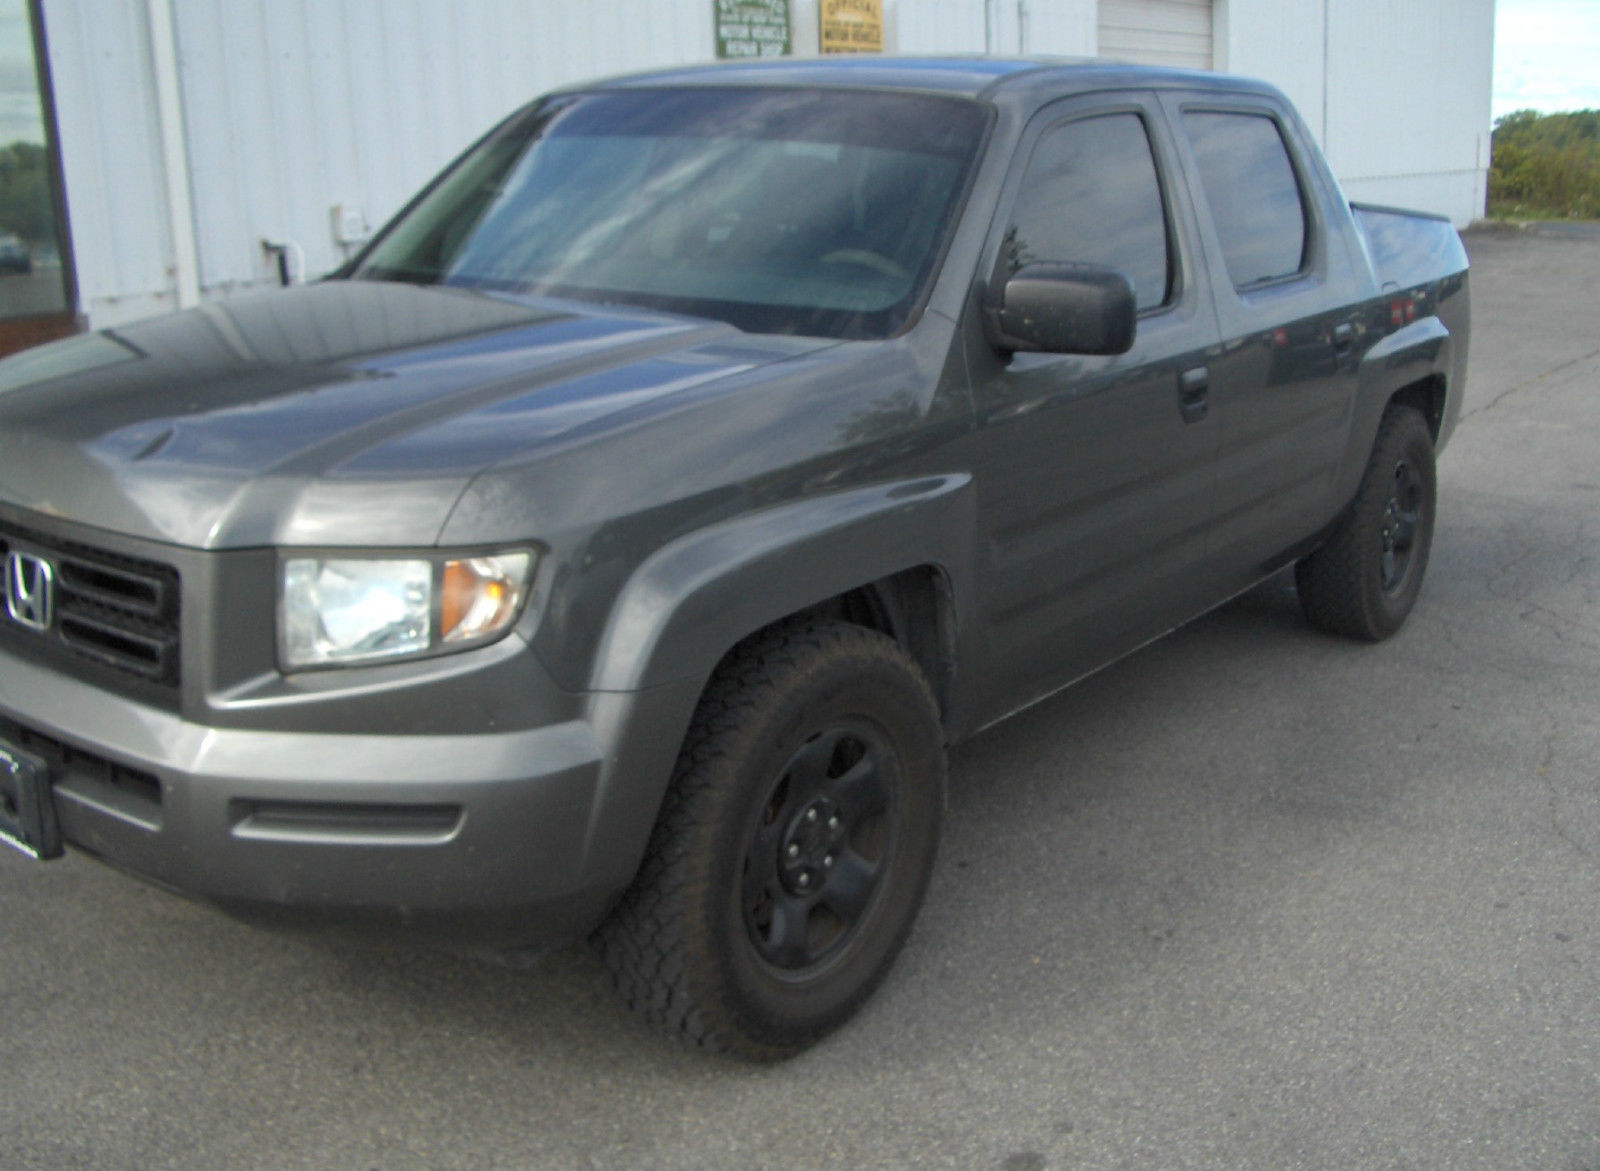 2007 honda ridgeline rt crew cab pickup 4 door 3 5l for sale. Black Bedroom Furniture Sets. Home Design Ideas